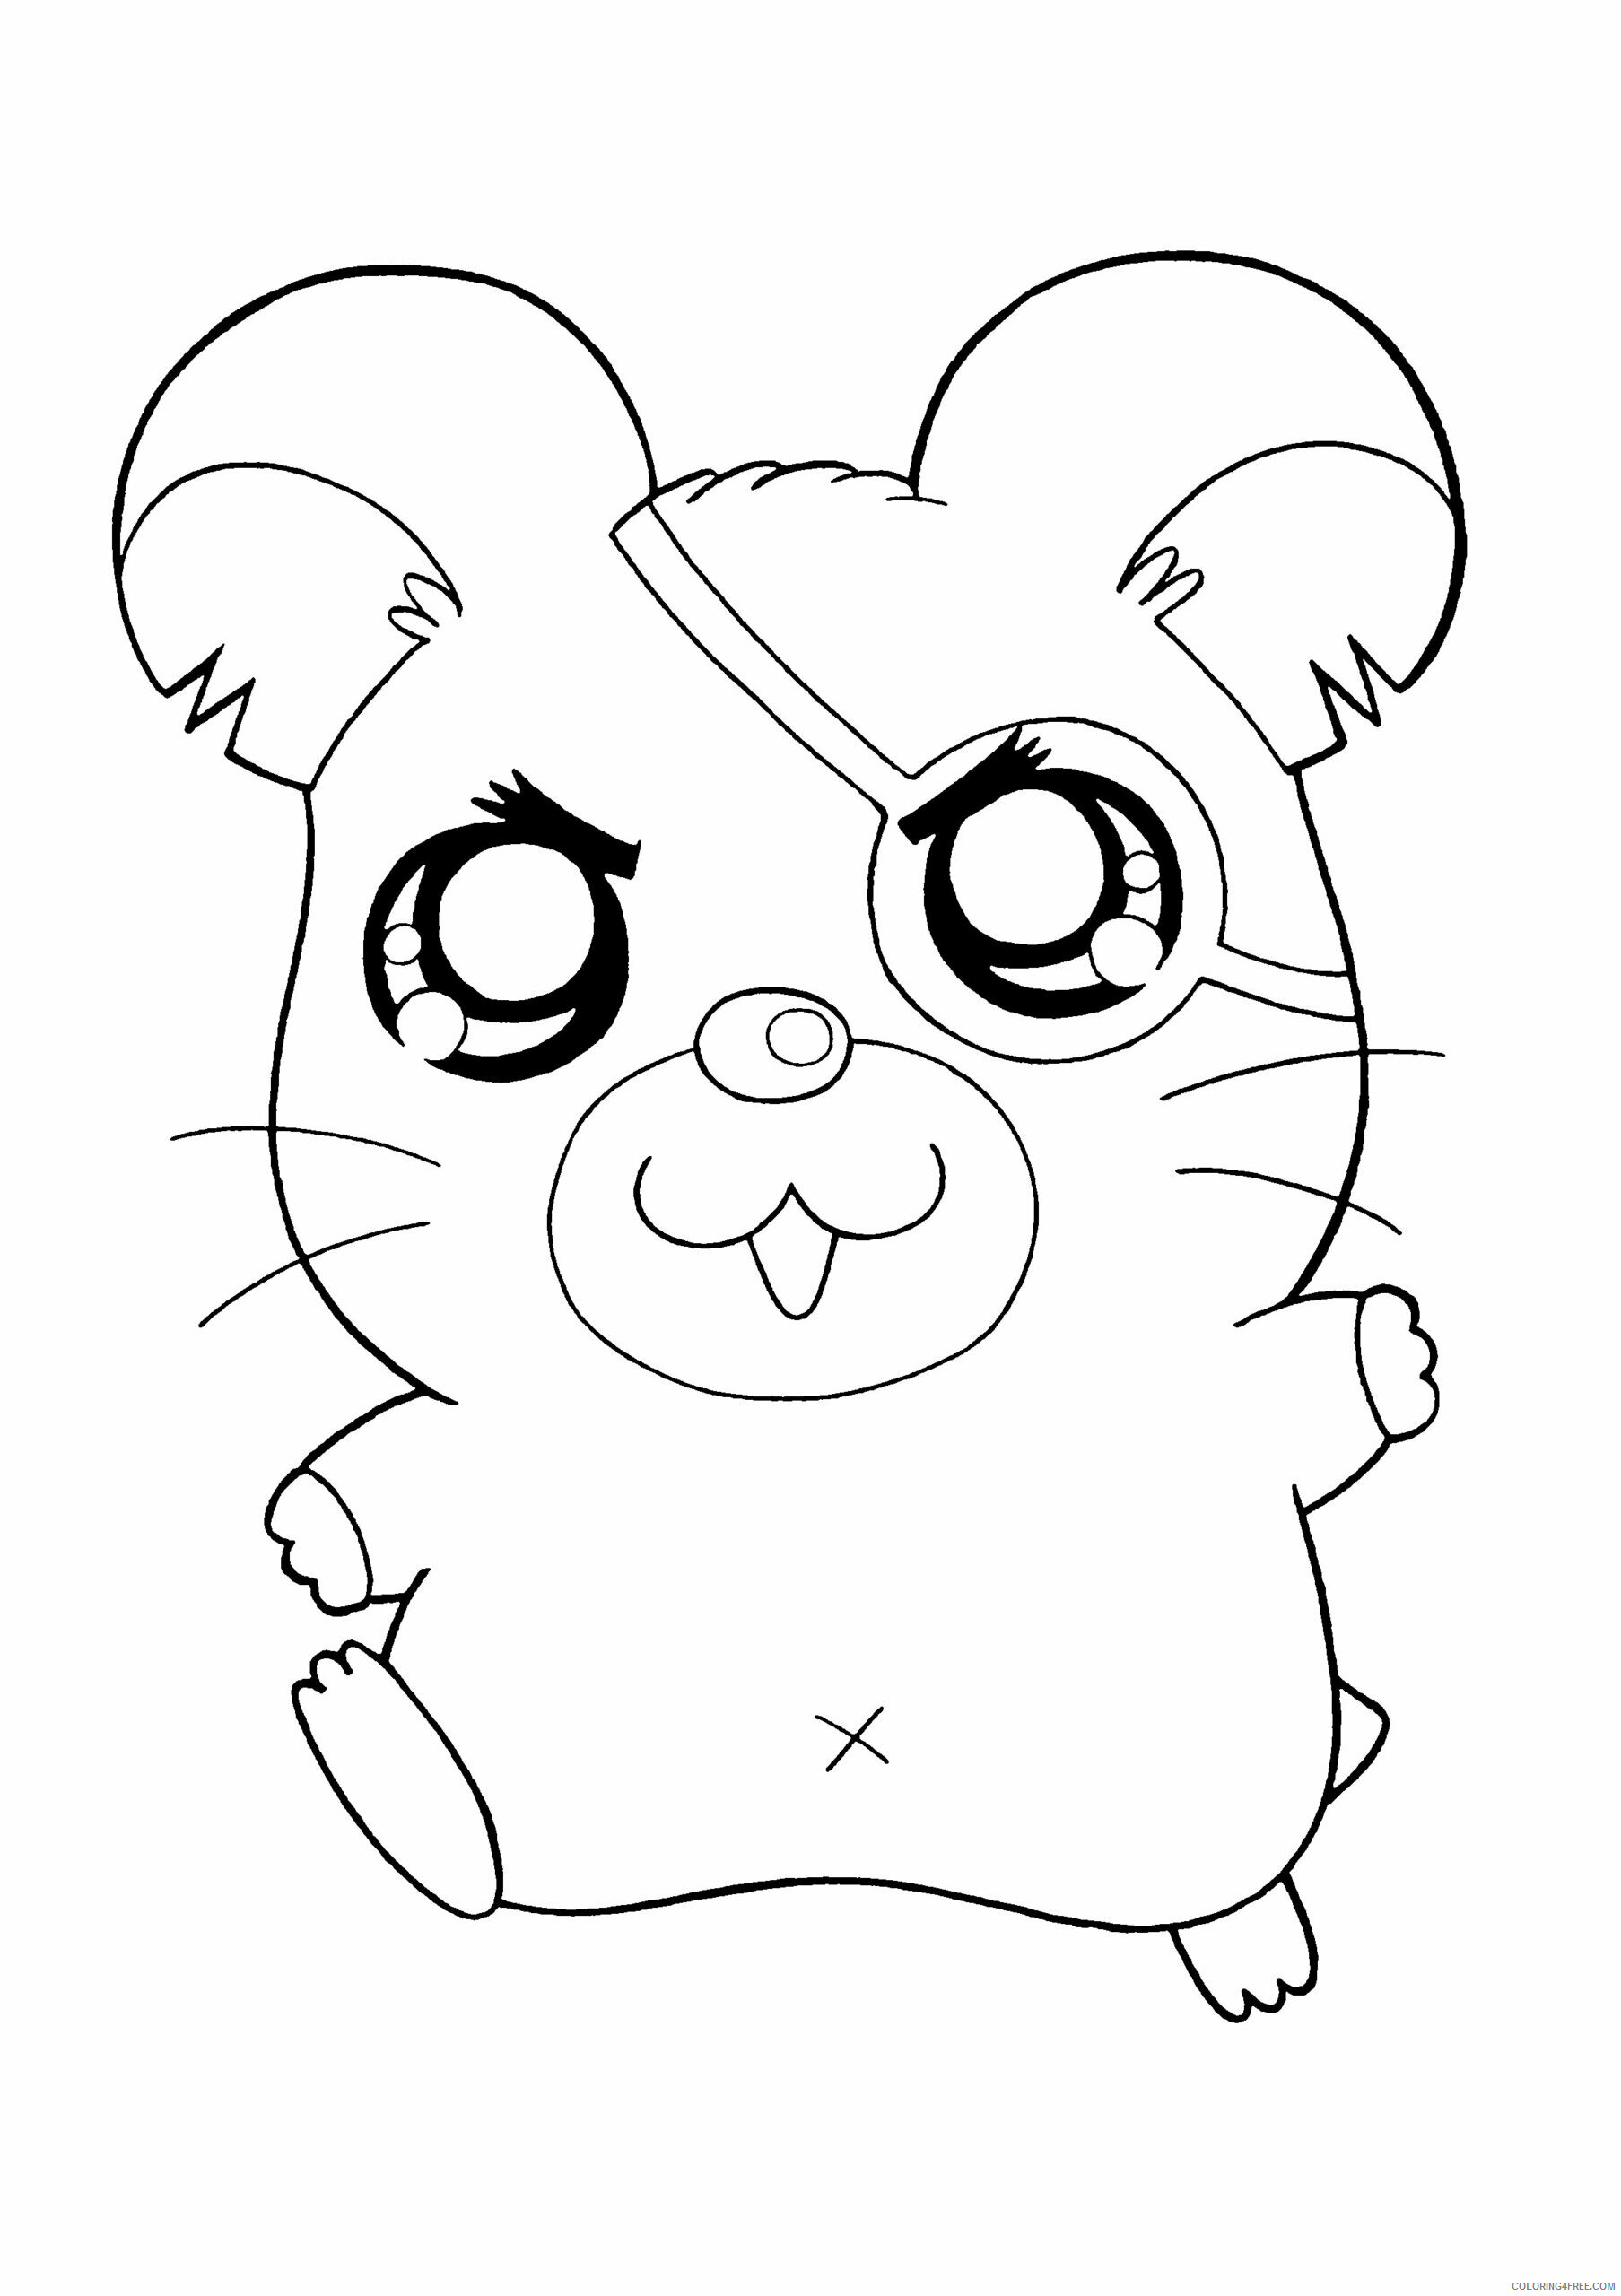 Az Hamtaro Coloring Pages Printable Sheets Hamtaro Pictures High Quality 2021 a 4549 Coloring4free